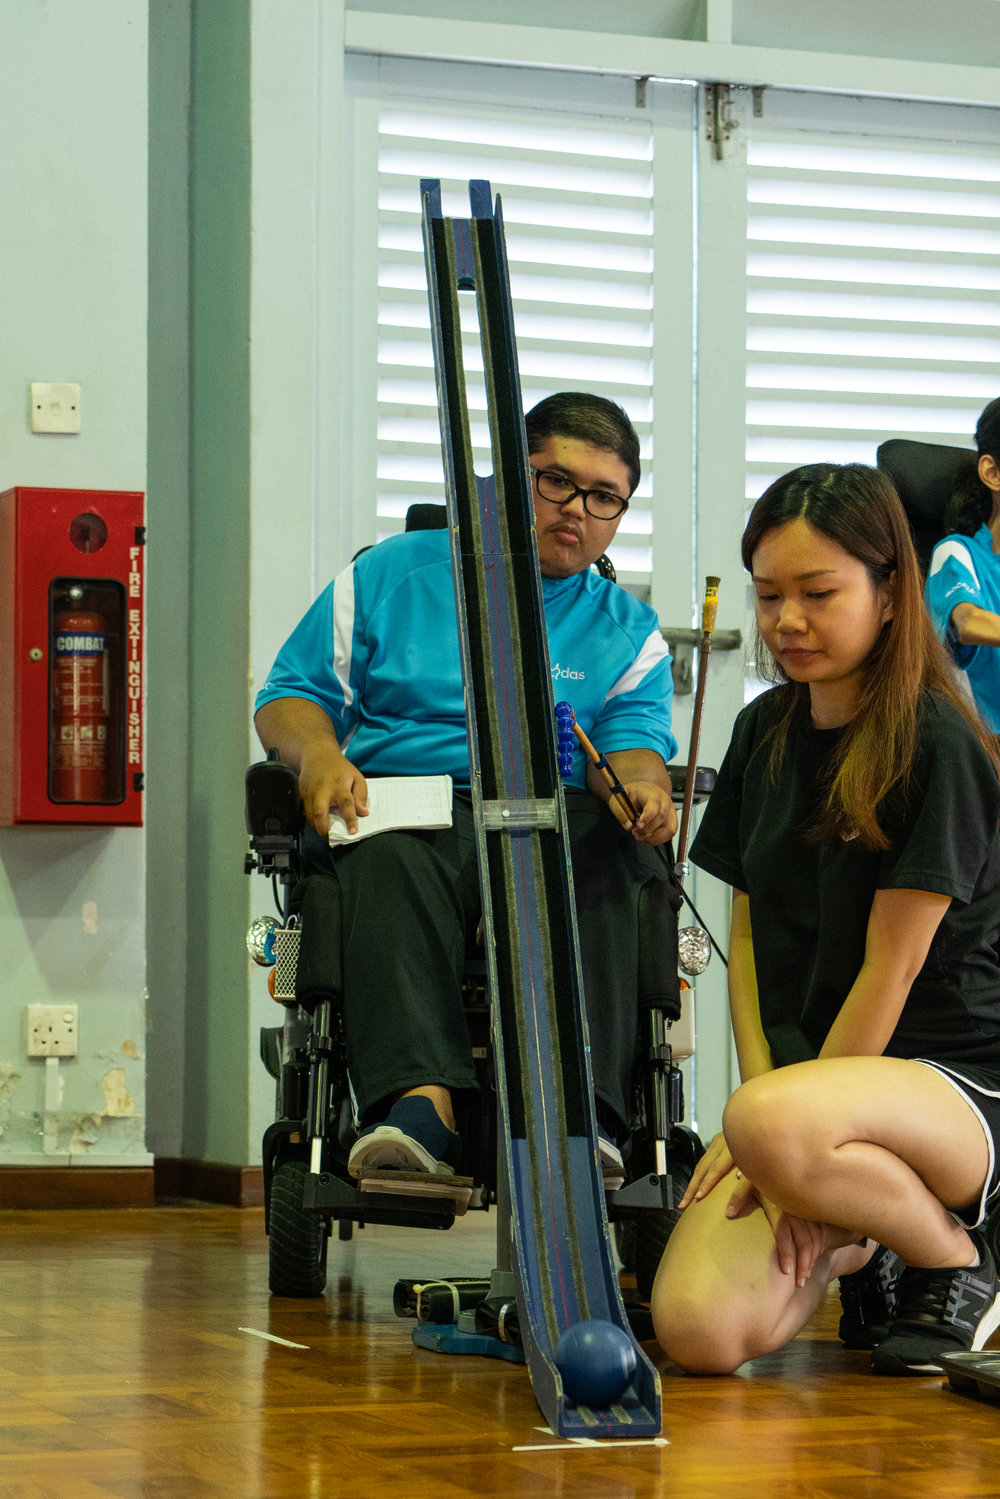 MDAS-Muscular-dystrophy-association-singapore-boccia